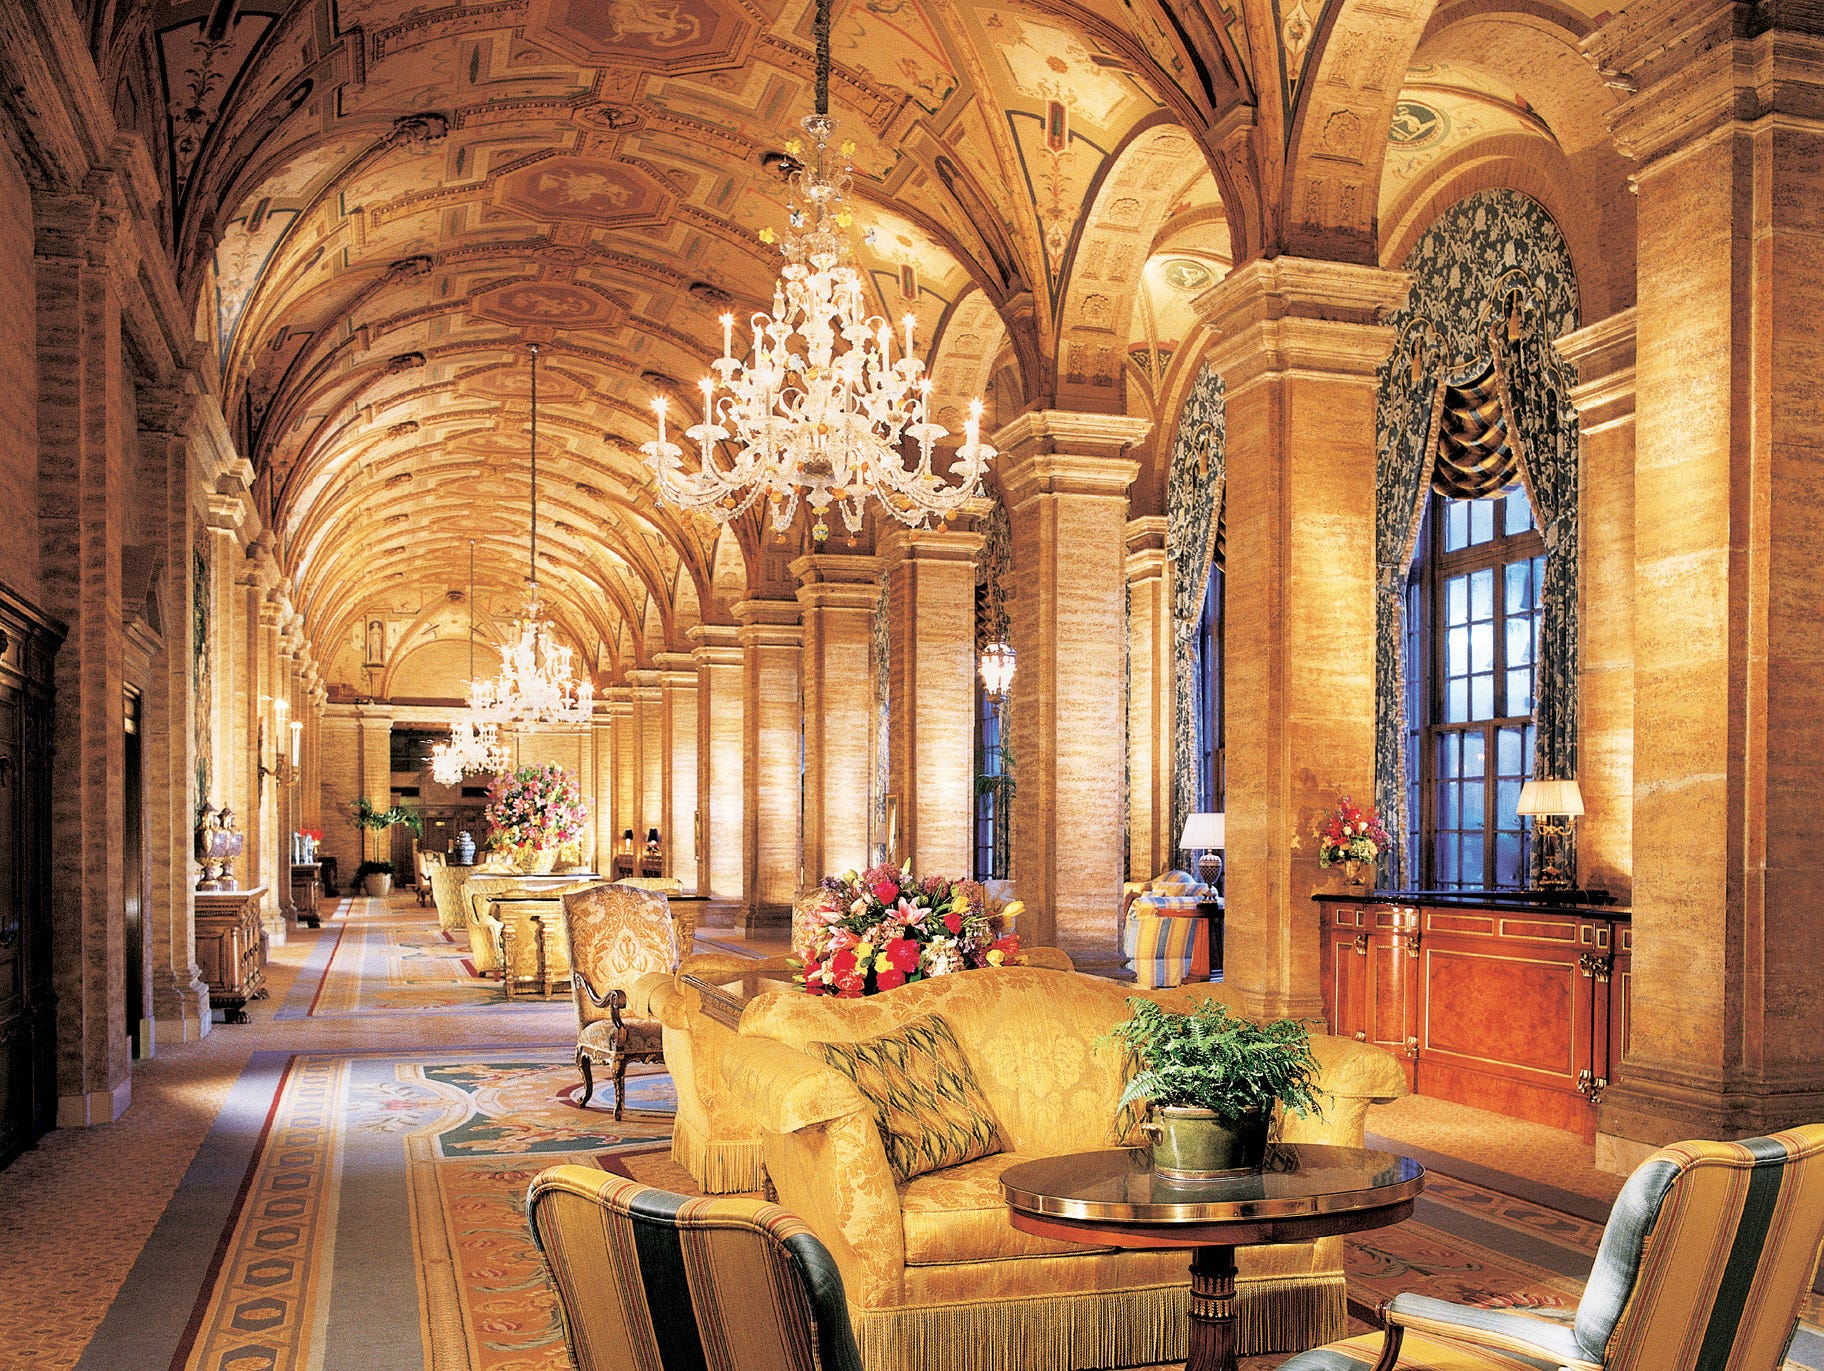 The lobby of the Breakers Hotel in Palm Beach, Florida.